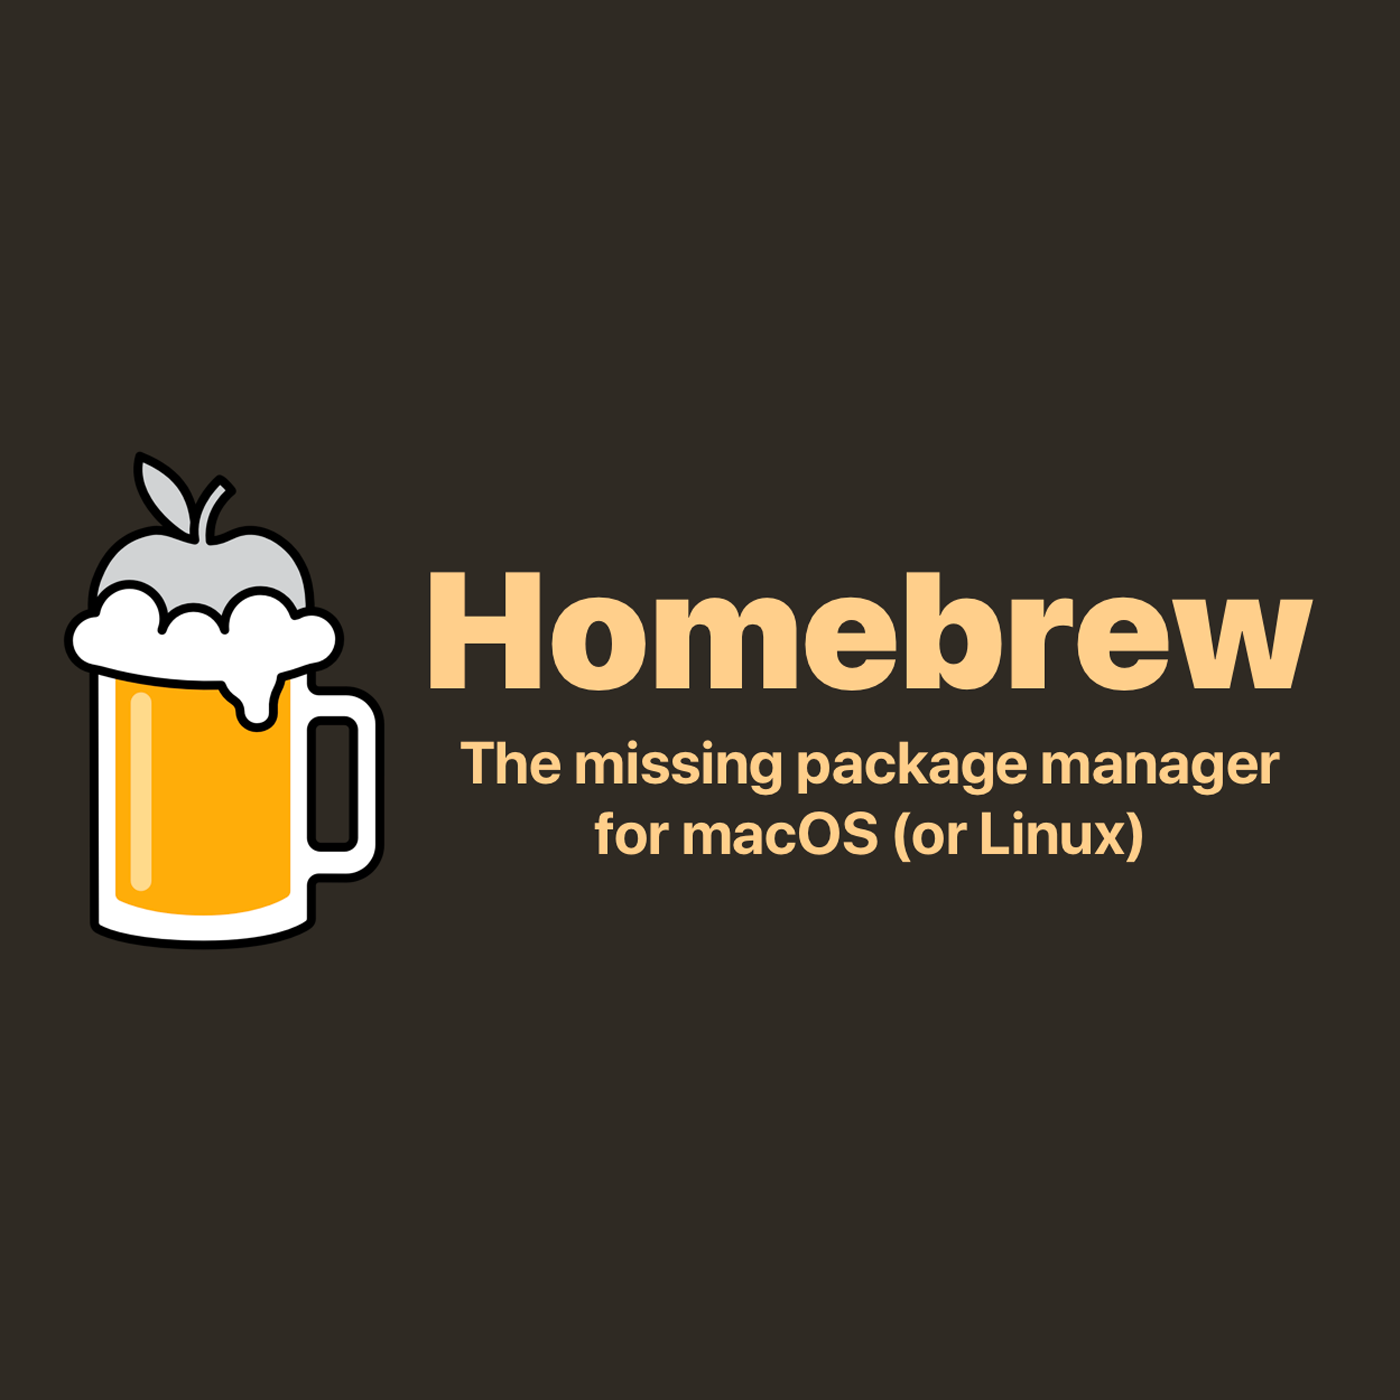 The Homebrew package manager logo